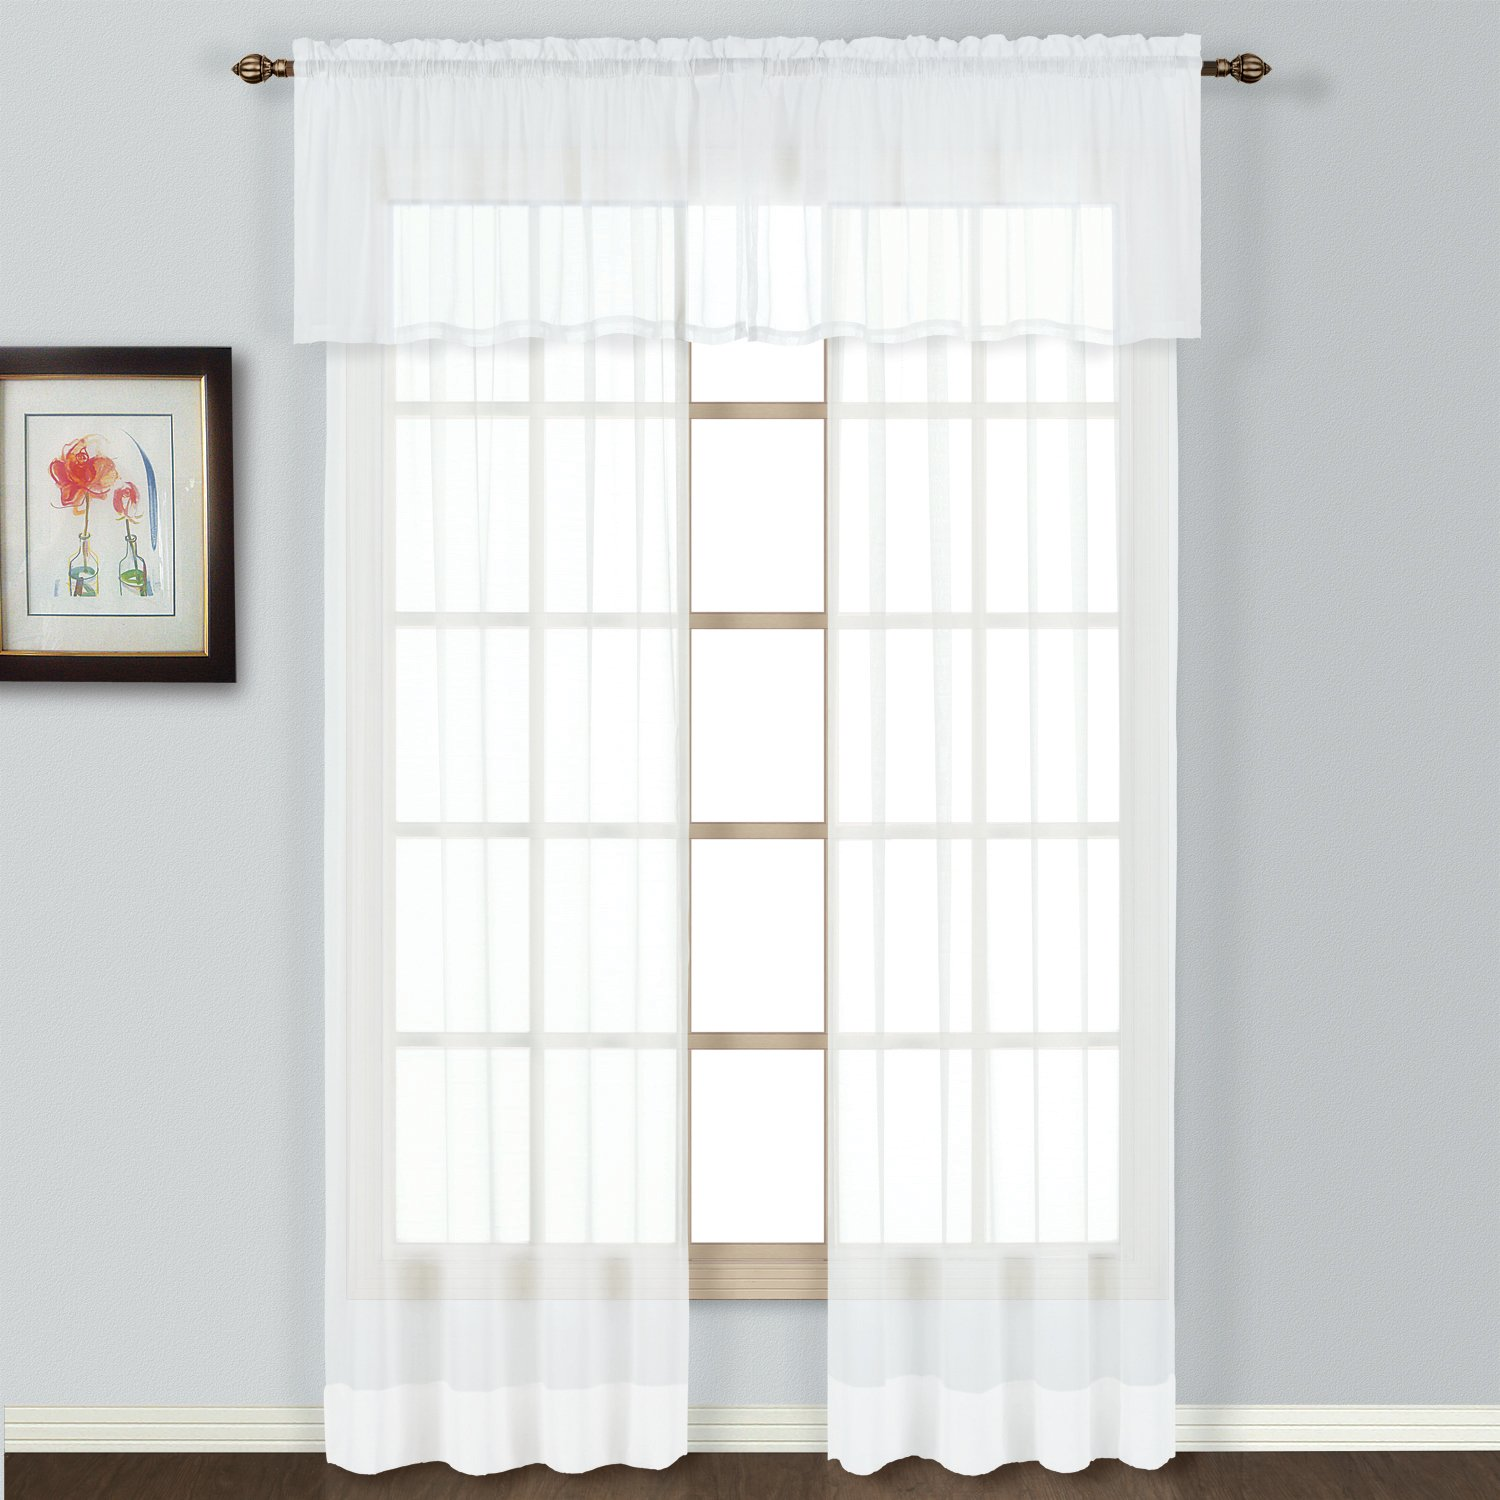 curtain white p sheer home by pocket price size drapes varies rod decorators curtains semi collection